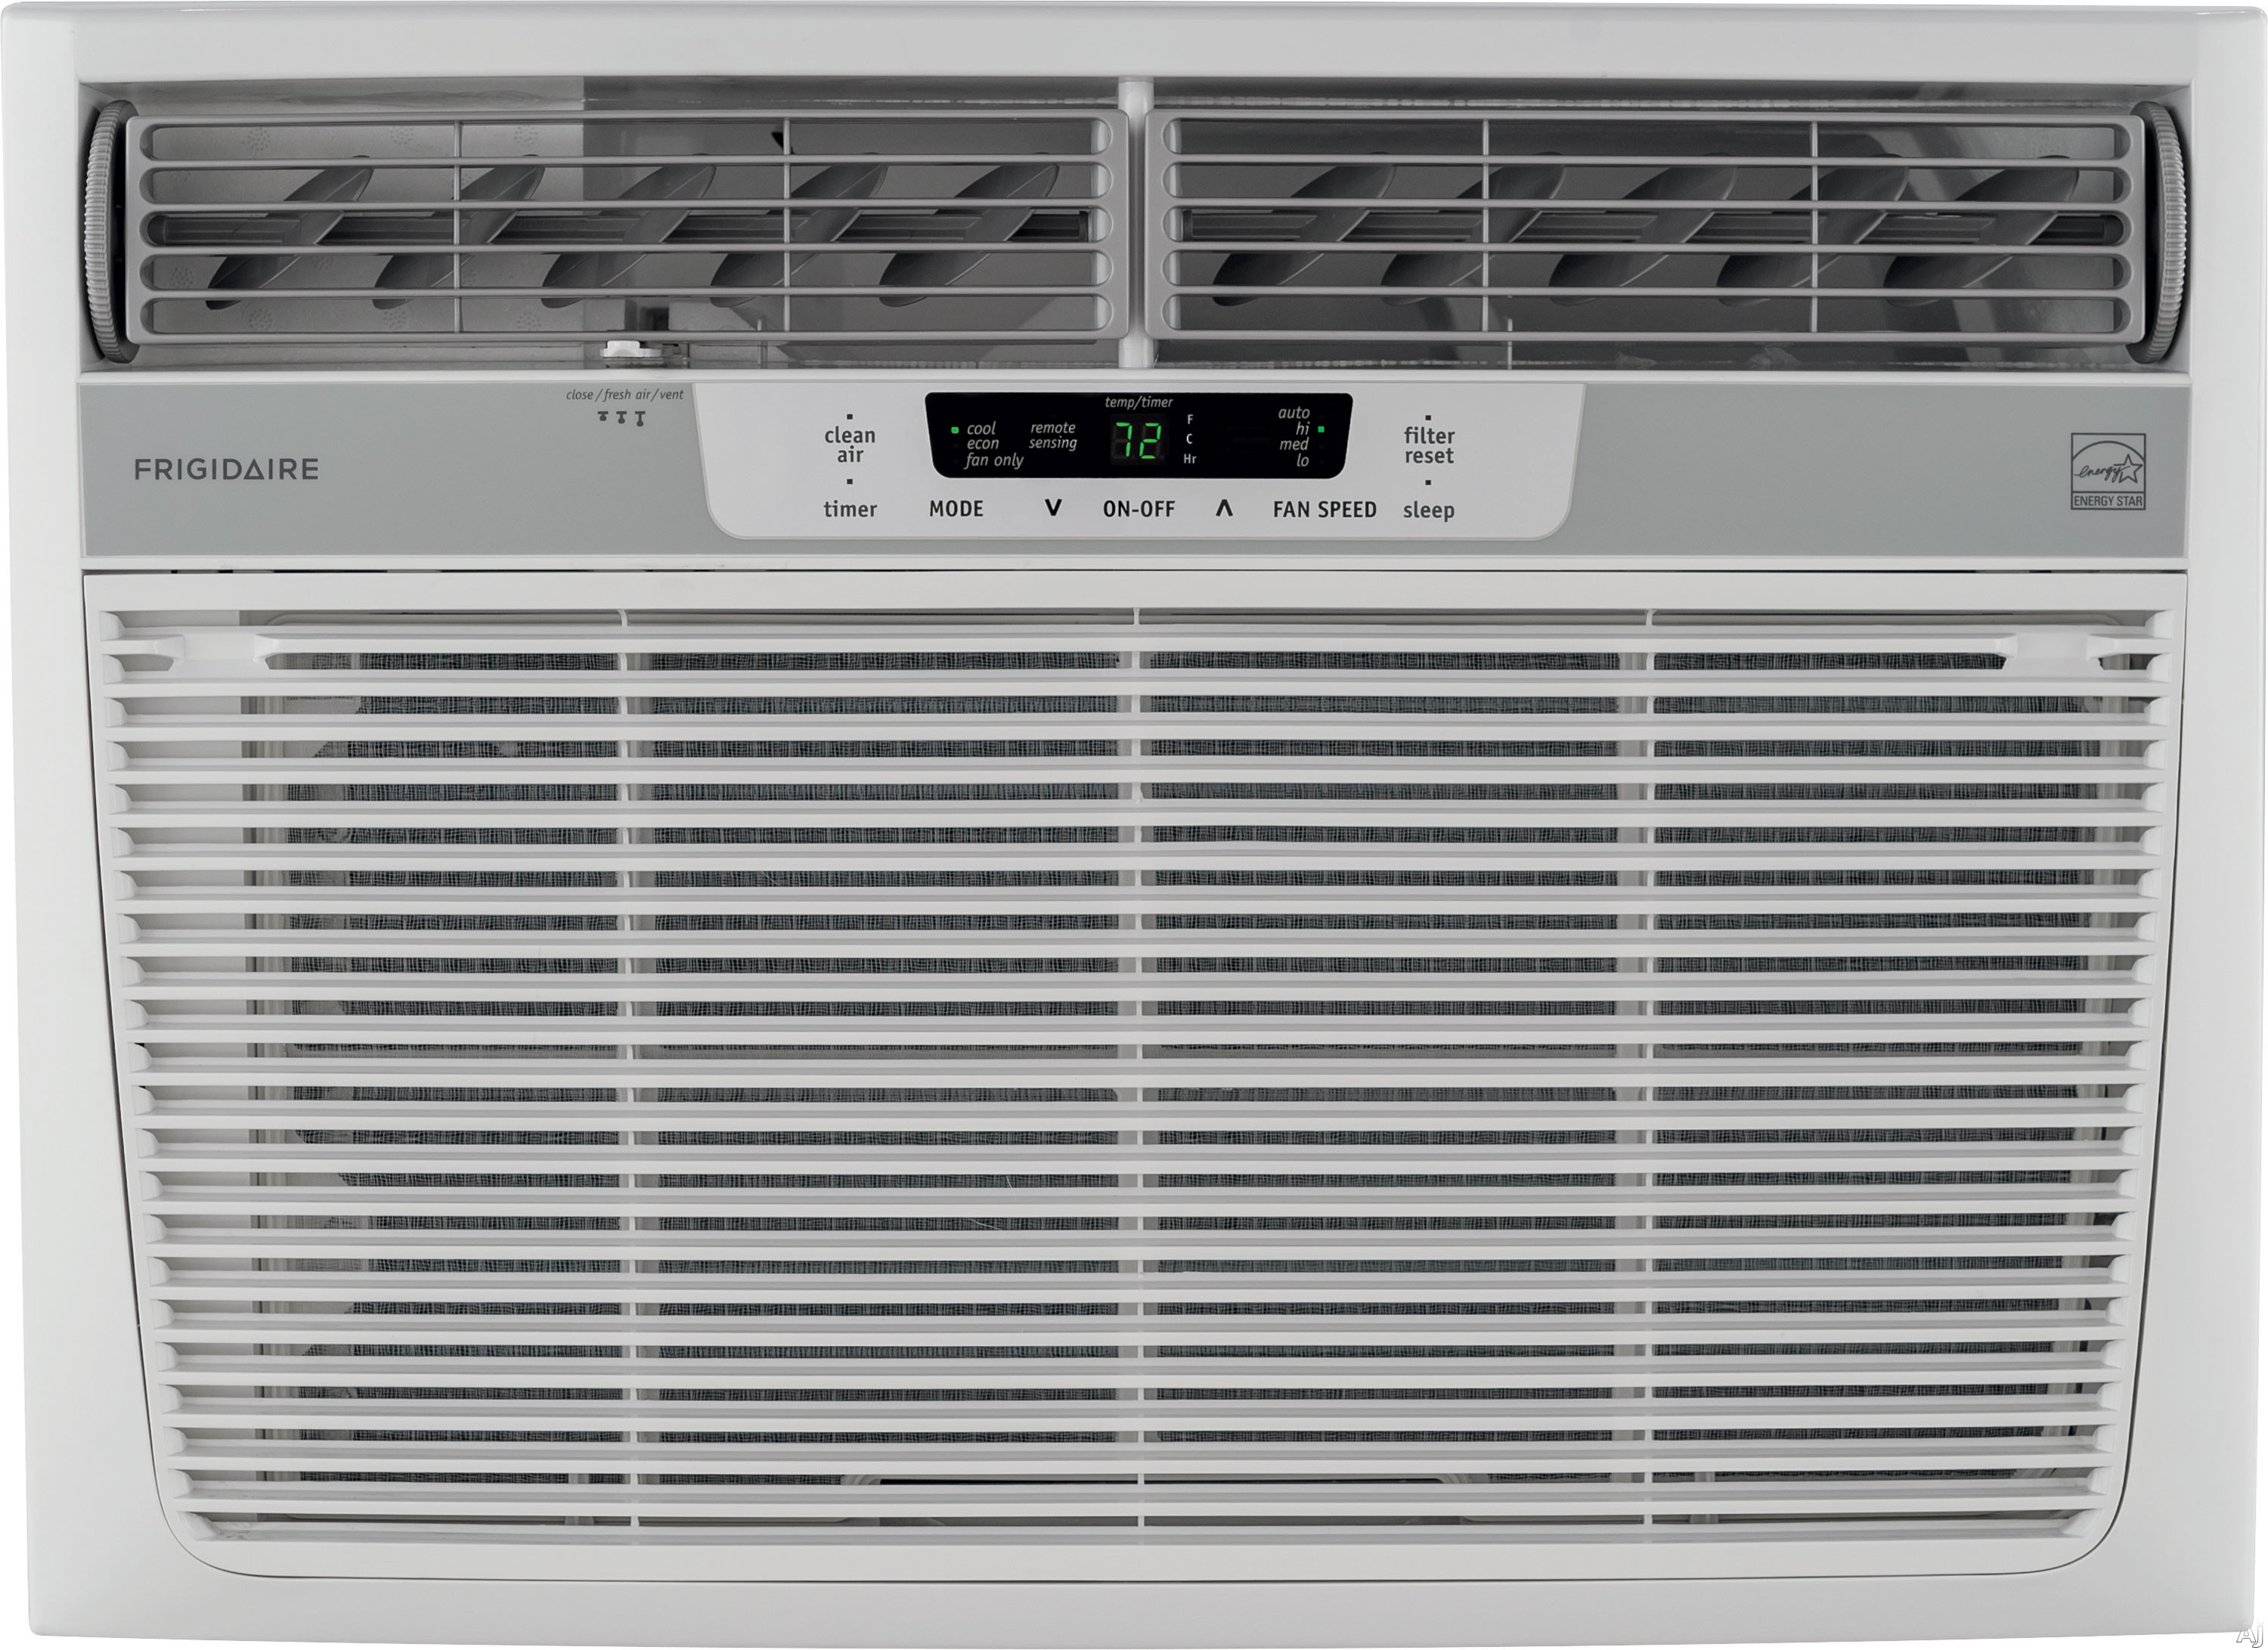 AJ Madison Your Appliance Authority > Air Conditioners > Room Air #535658